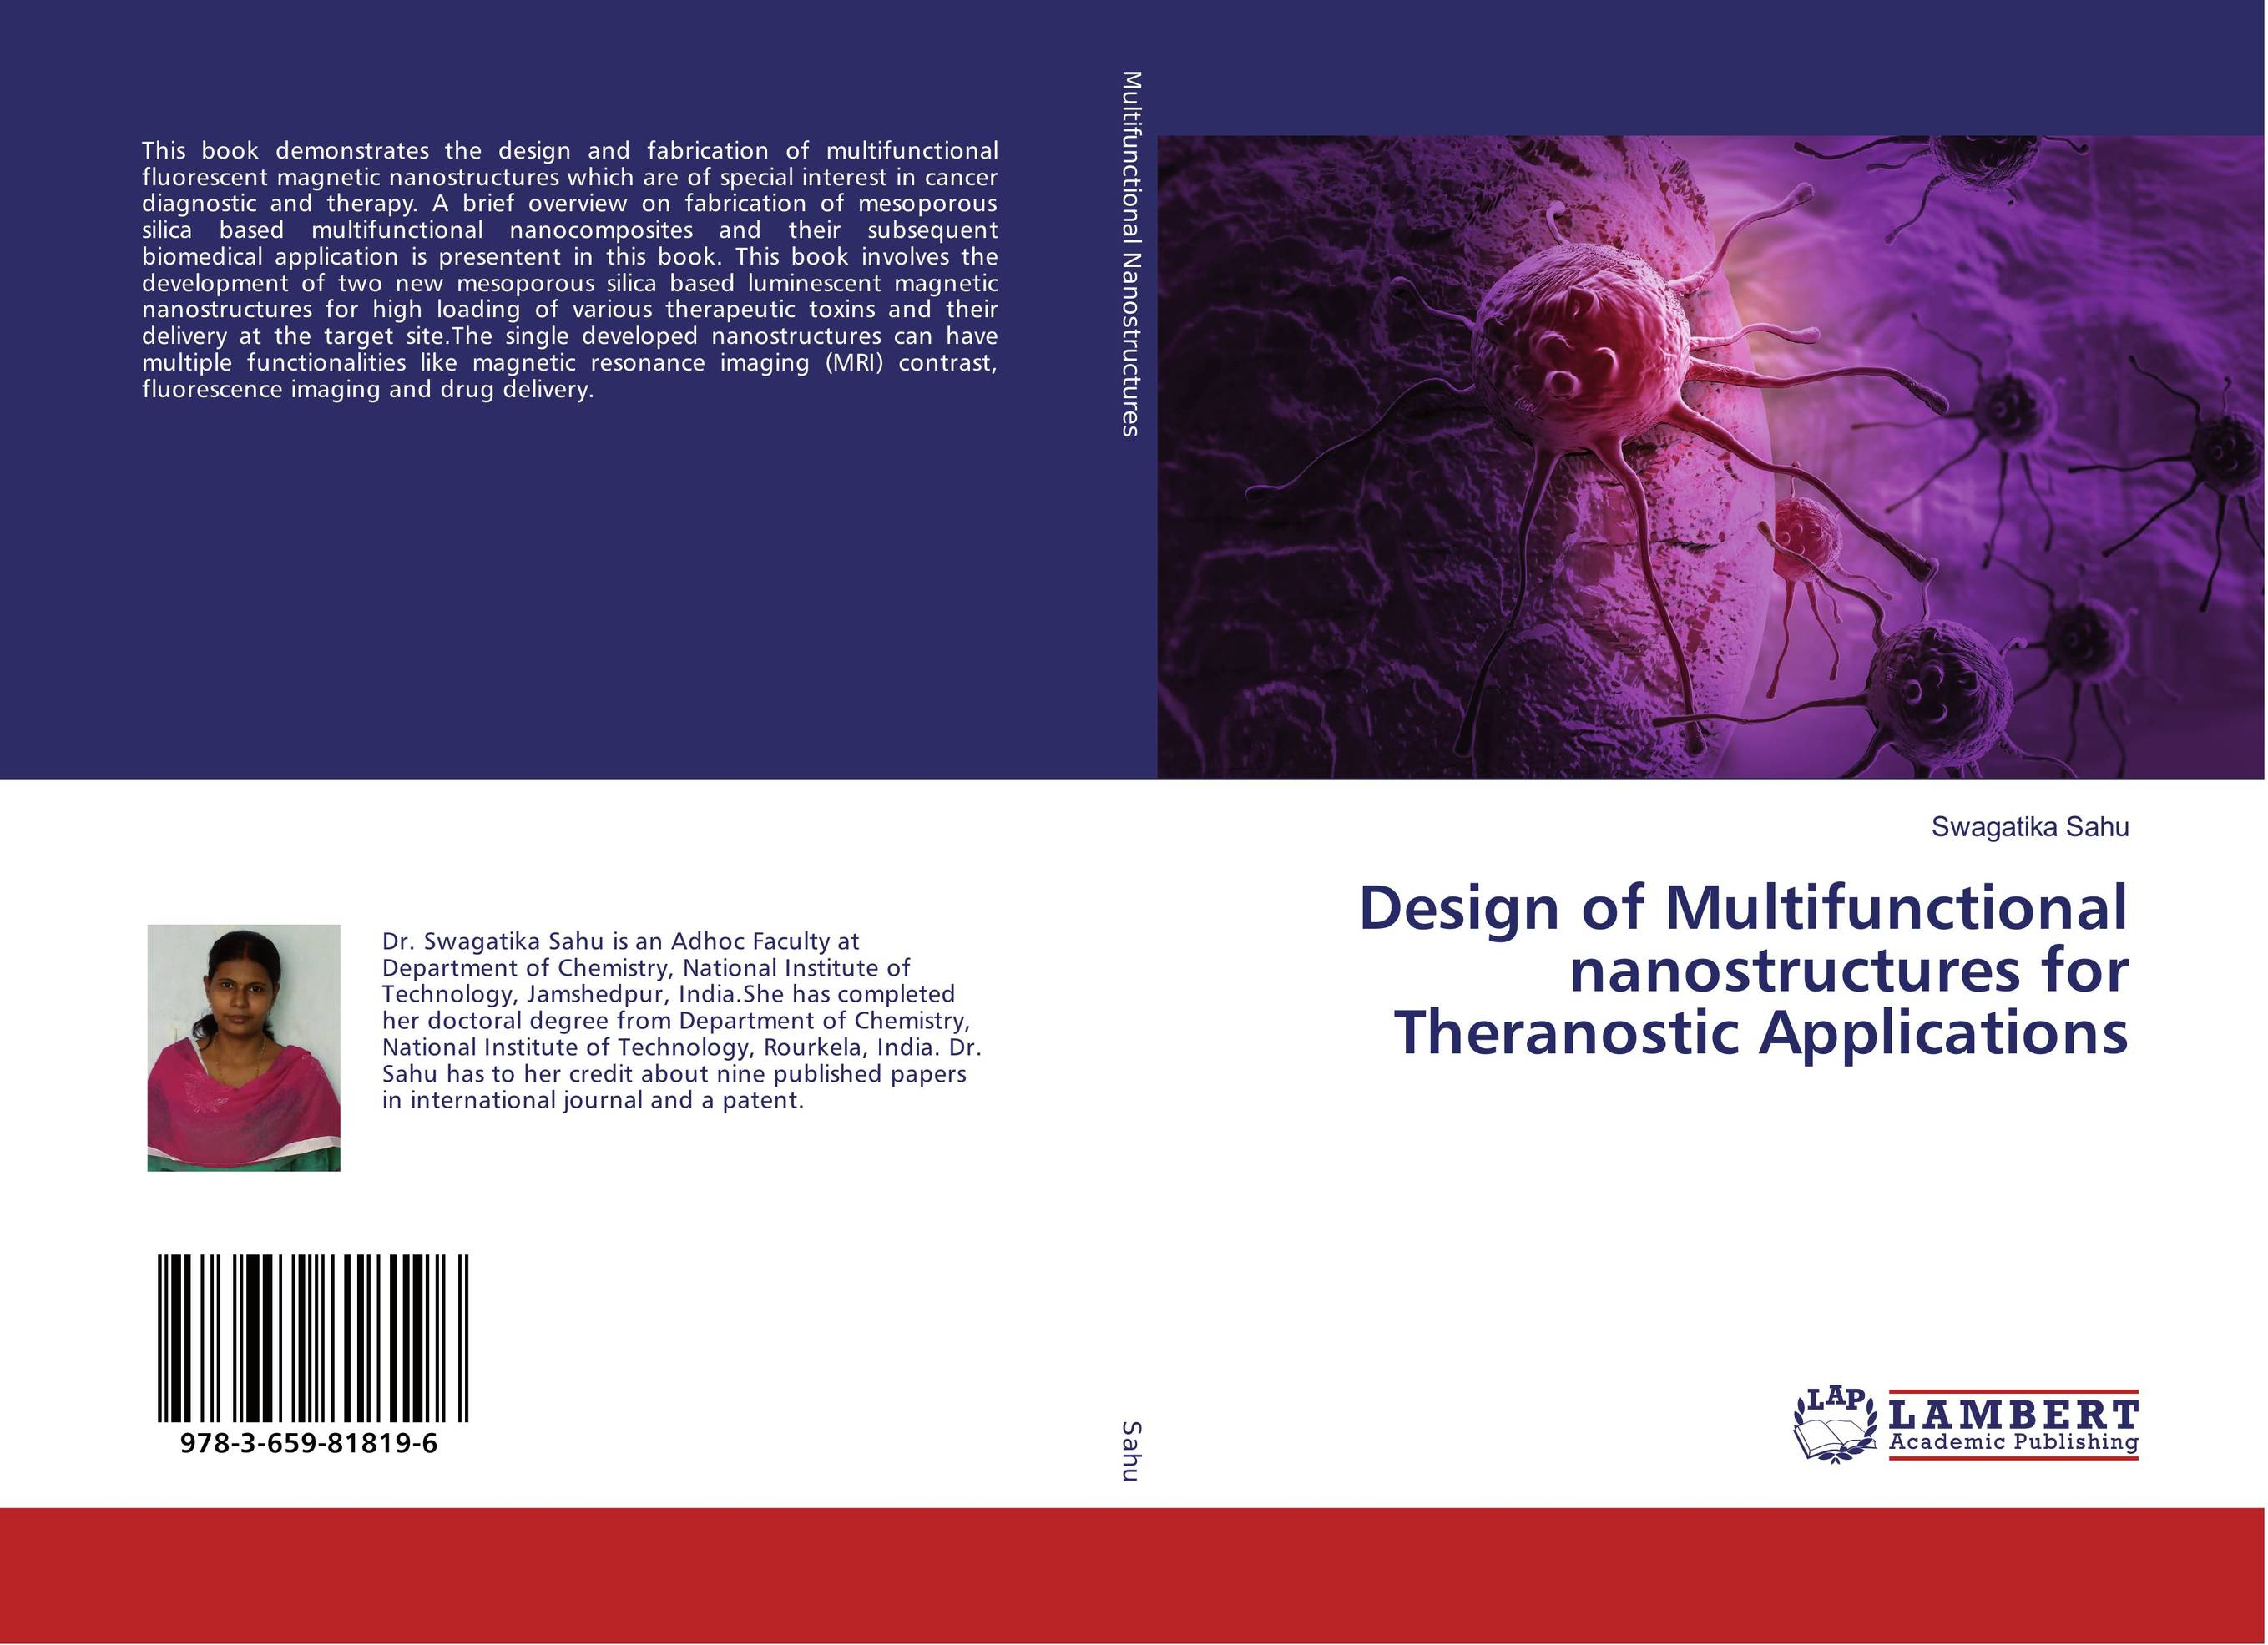 Design of Multifunctional nanostructures for Theranostic Applications target oriented drug delivery system